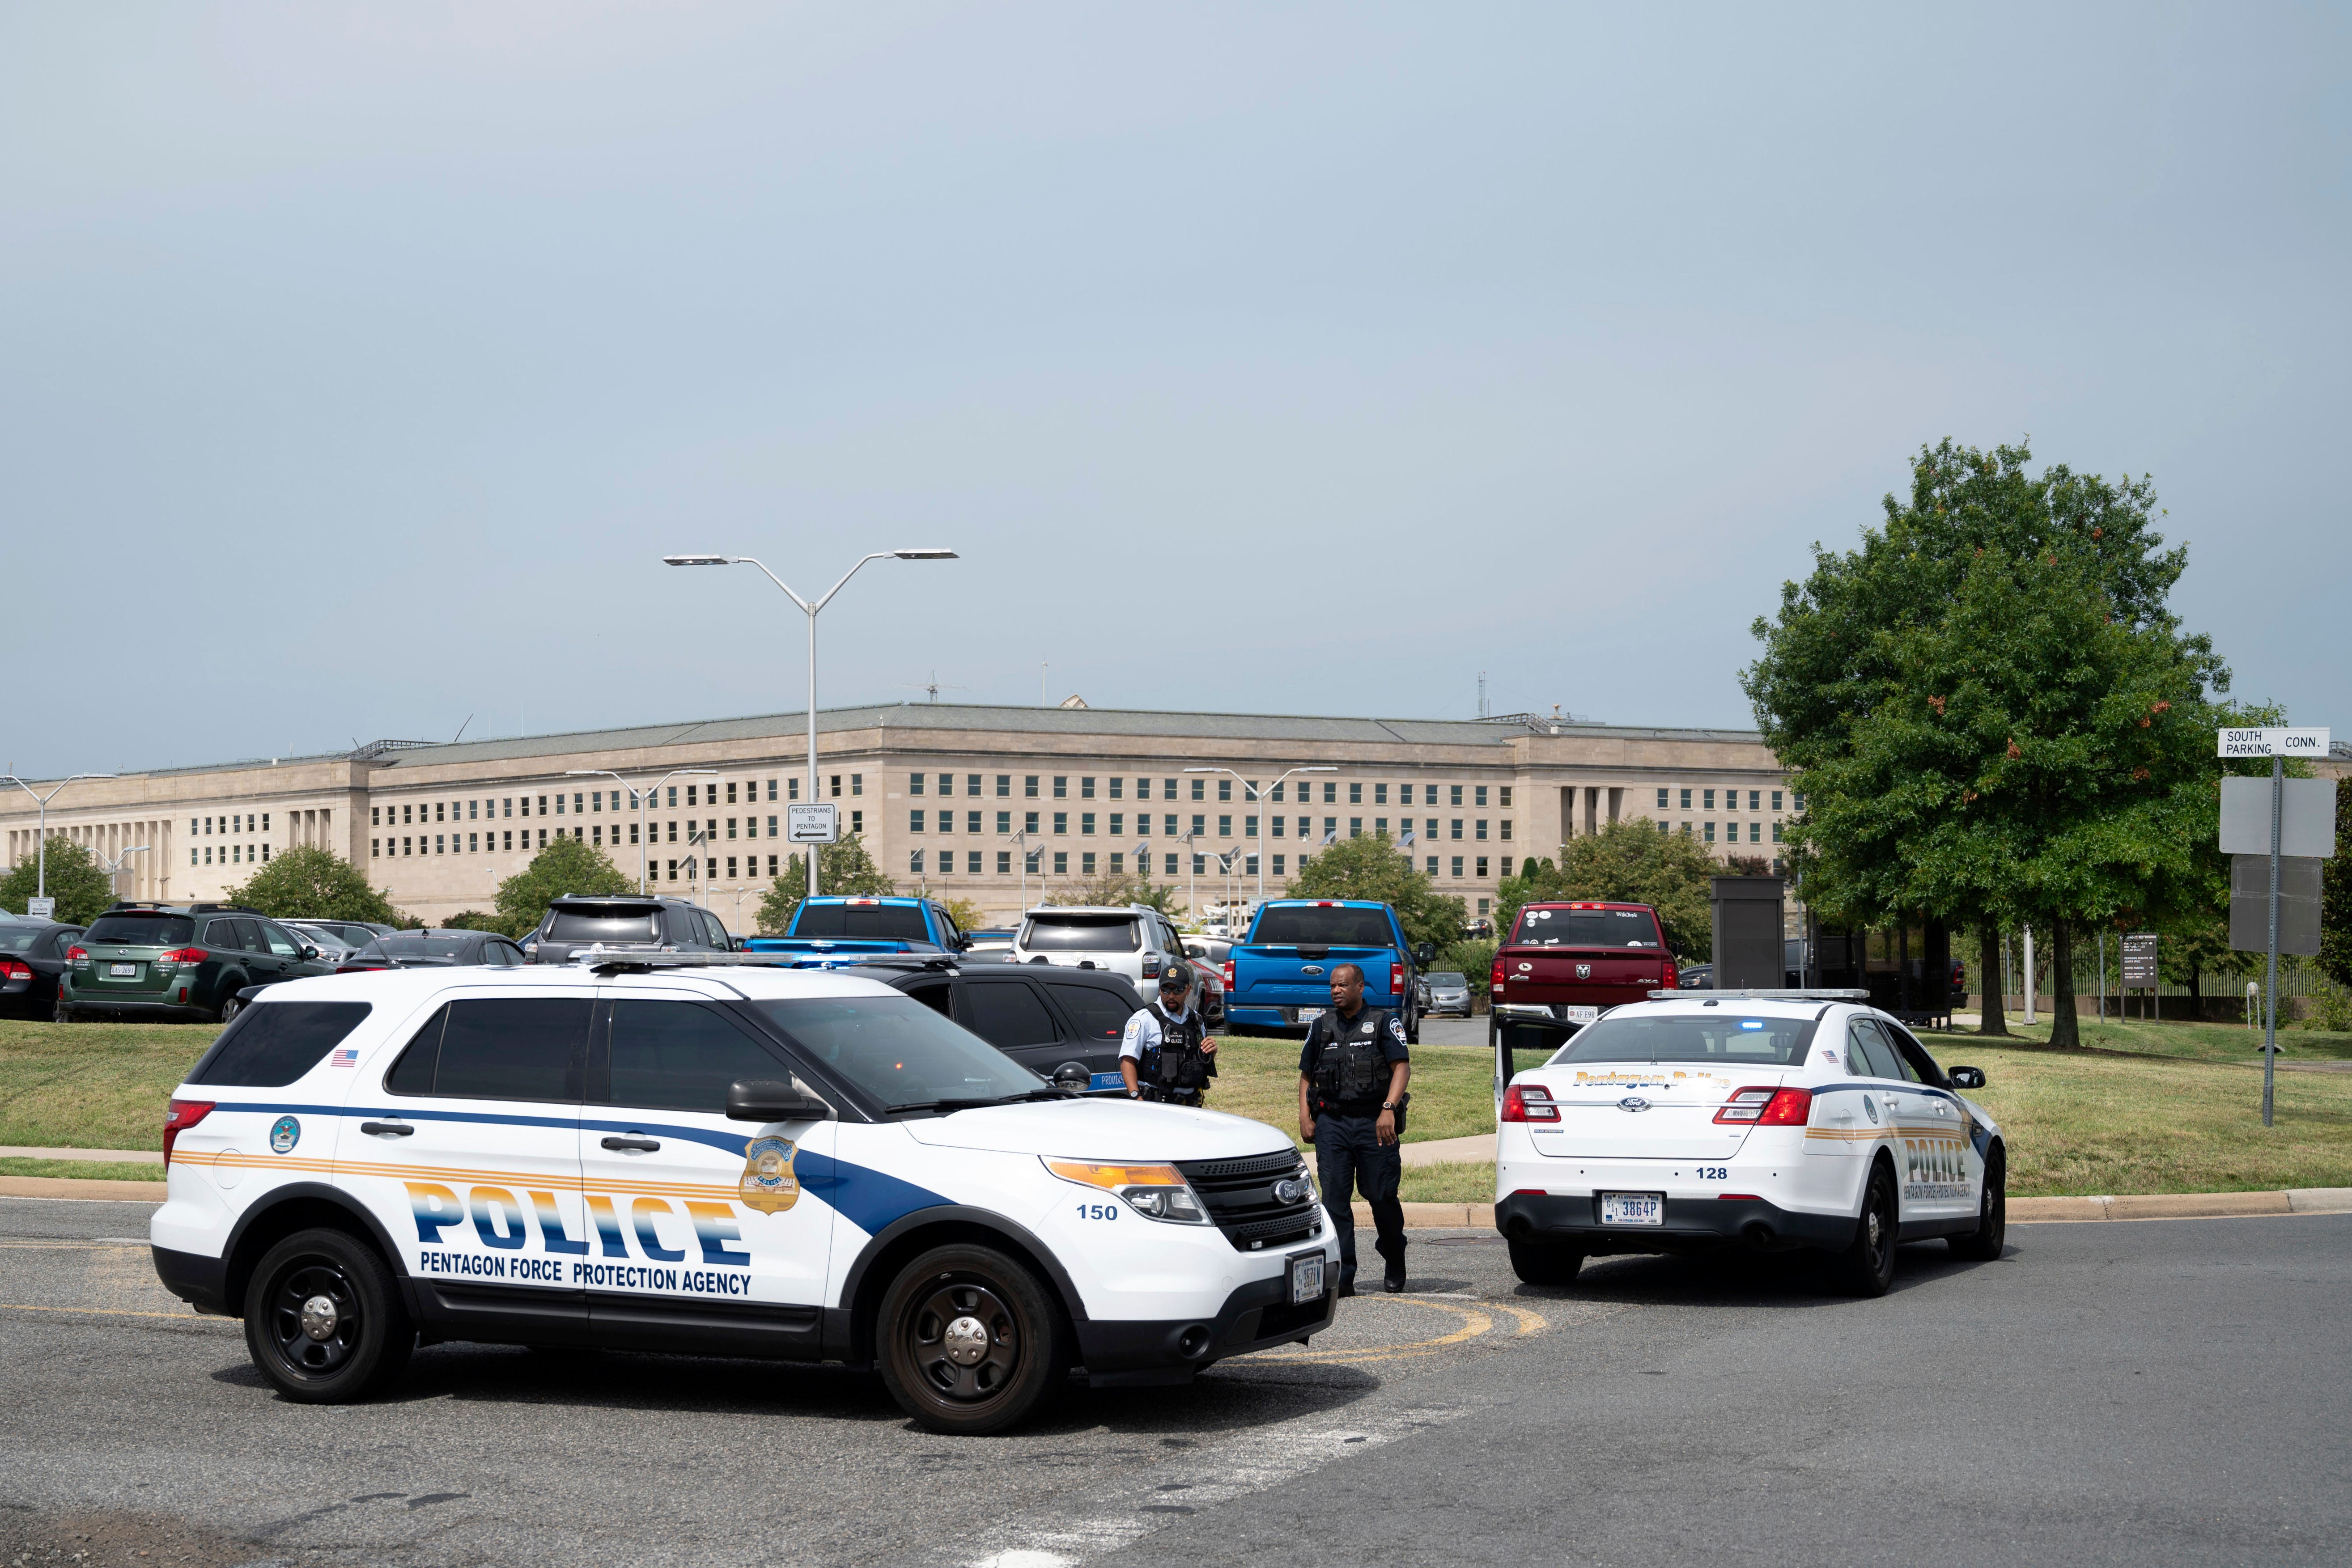 Forever grateful : Officer dies after being attacked outside Pentagon, officials say